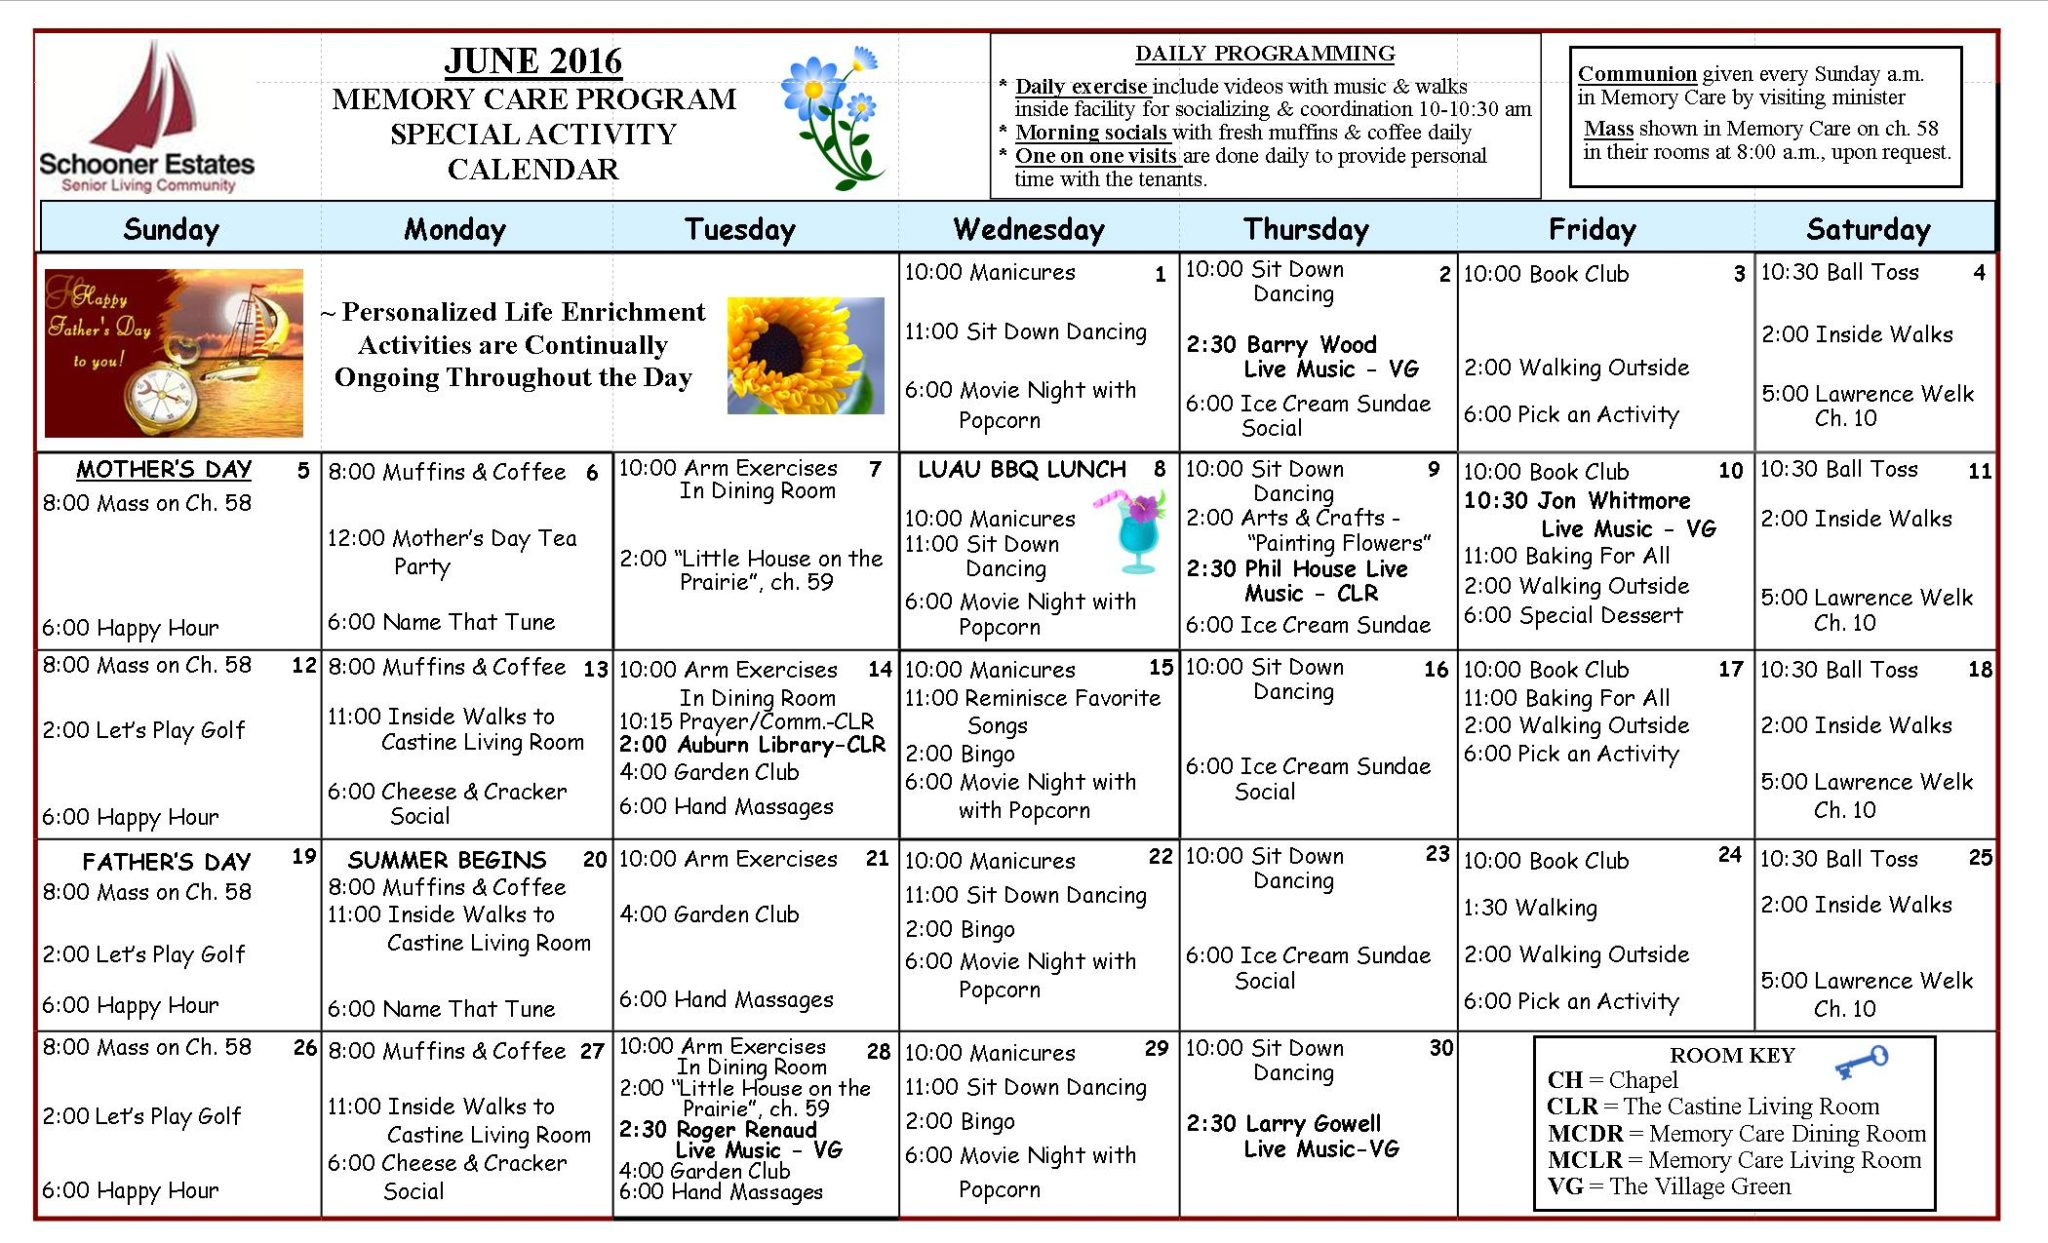 June 2016 Memory Care Activity Calendar